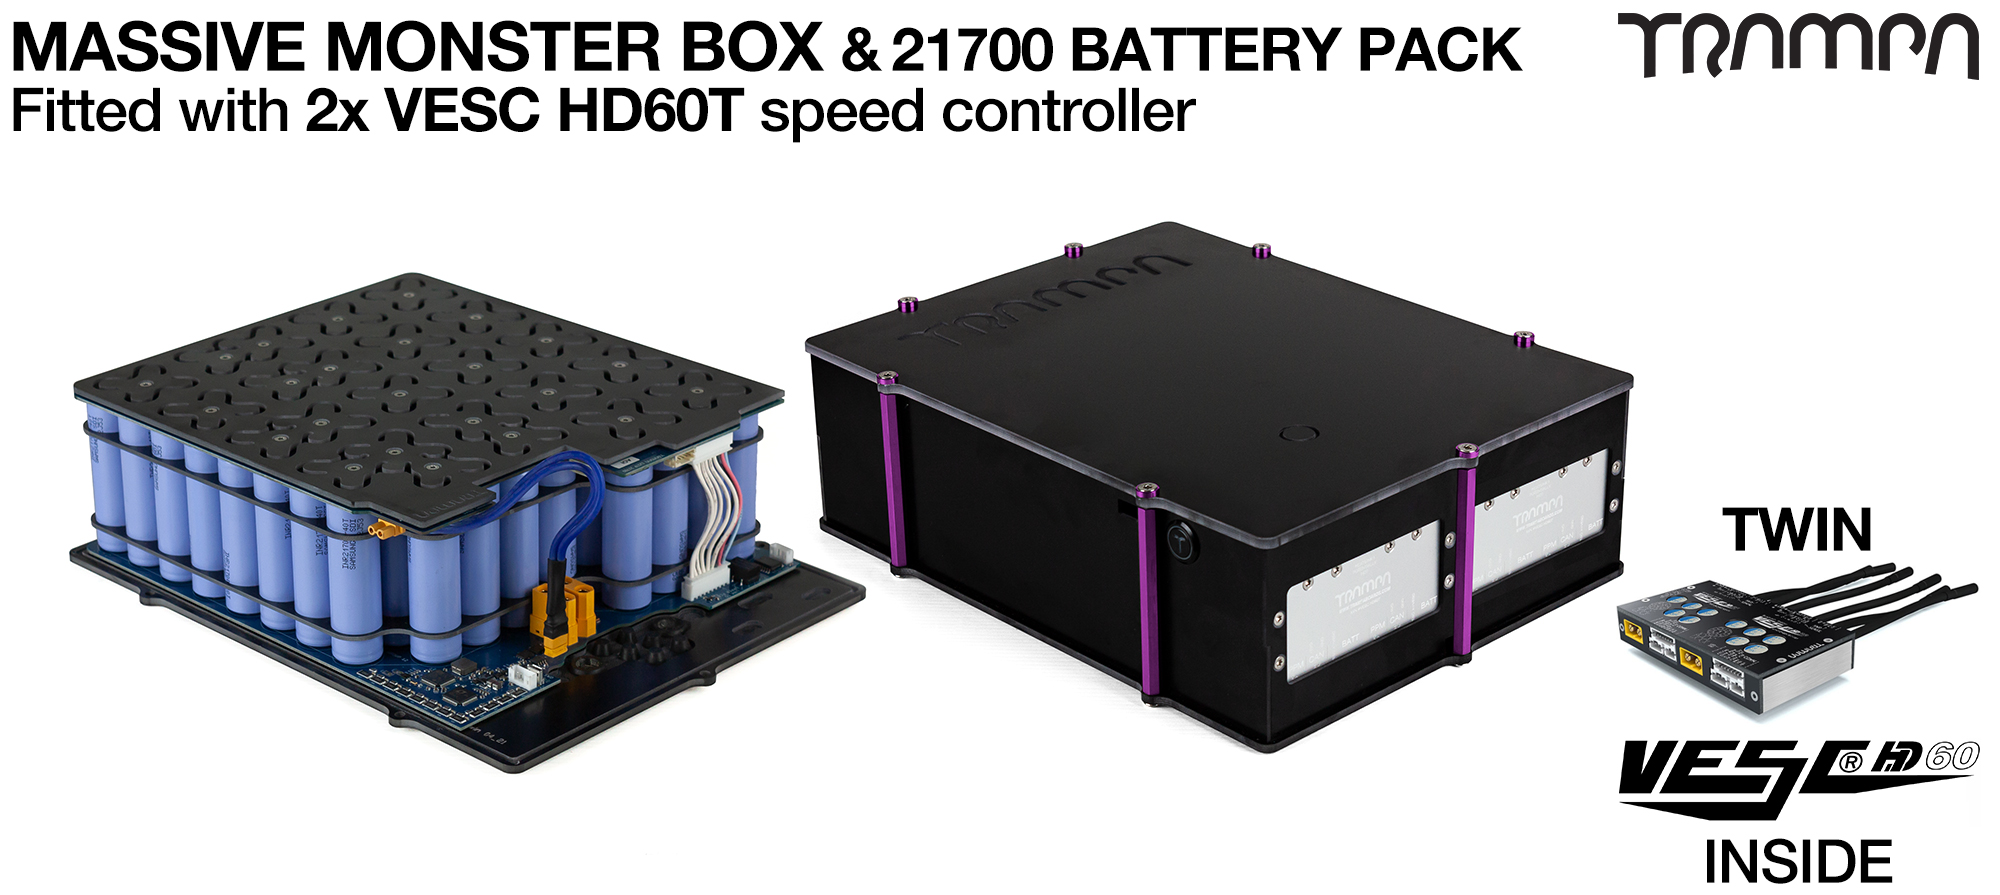 21700 4WD MASSIVE MONSTER Box with 21700 PCB Pack with 2x VESC HD-60Twin & 84x 21700 cells 12s7p = 35Ah - Specifically made to work in conjunction with TRAMPA's Electric Decks but can be adapted to fit anything - UK Customers only